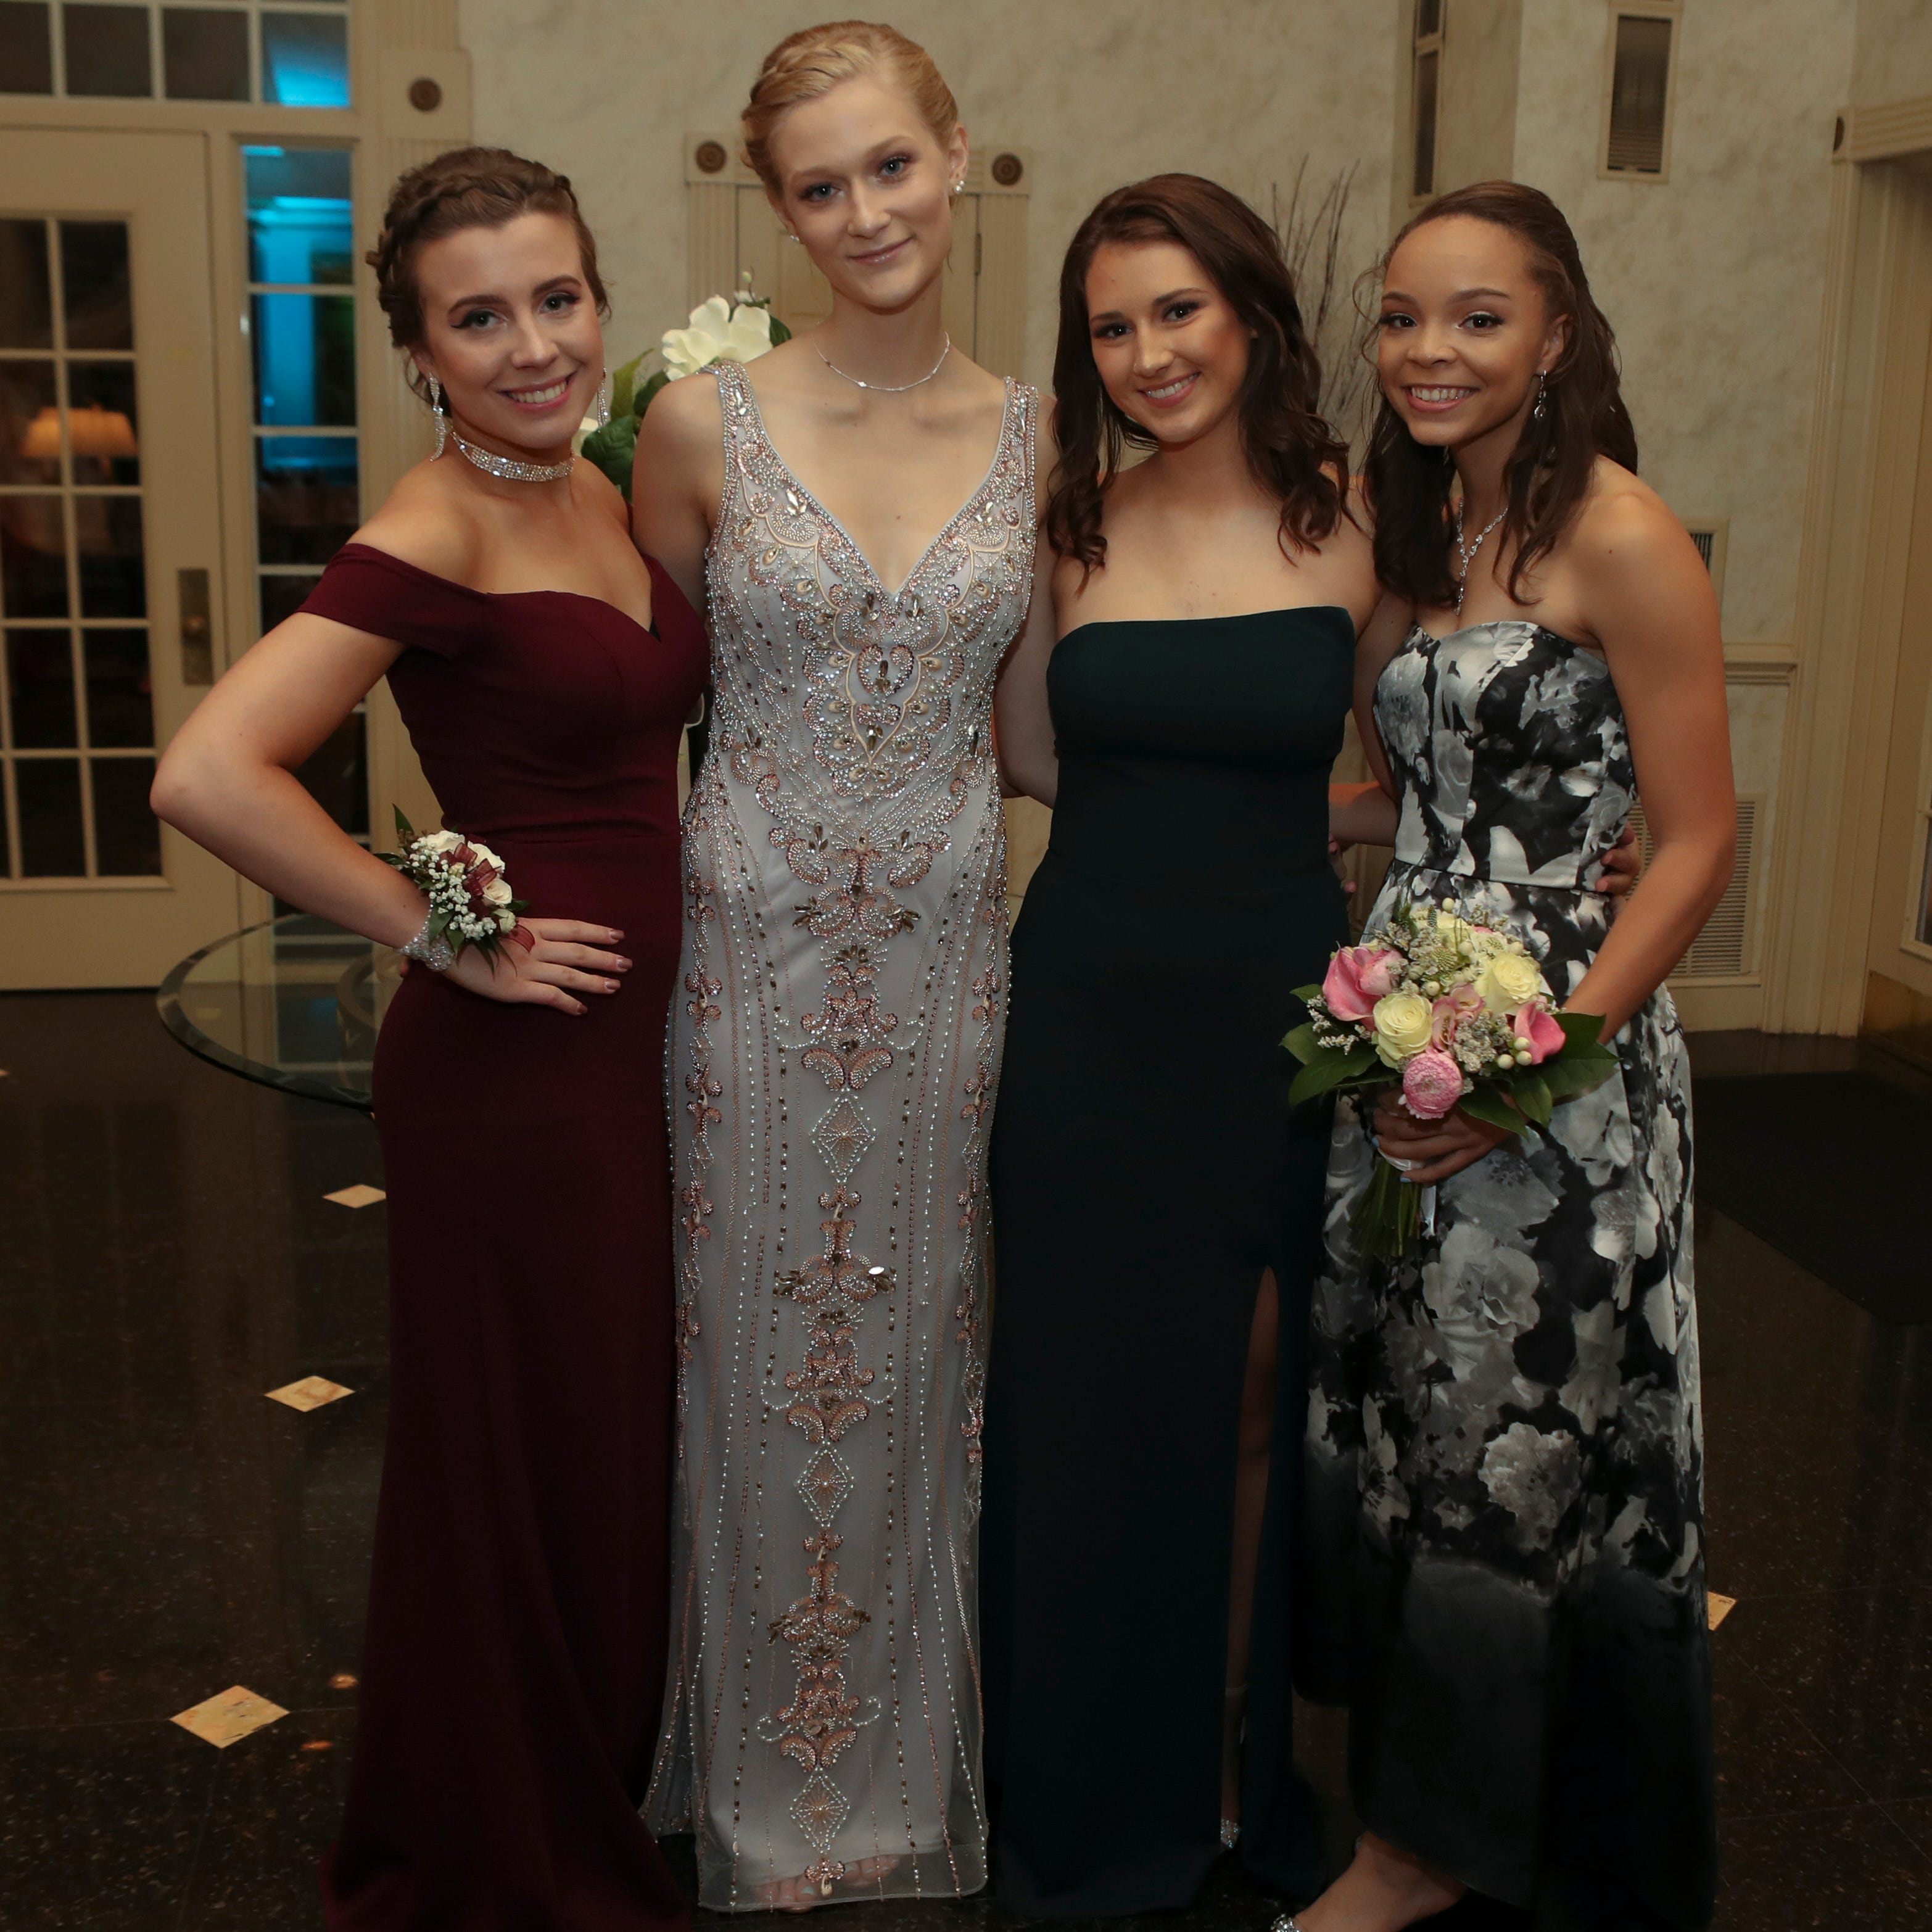 Prom 2019 photos: The students, the looks, the fashion